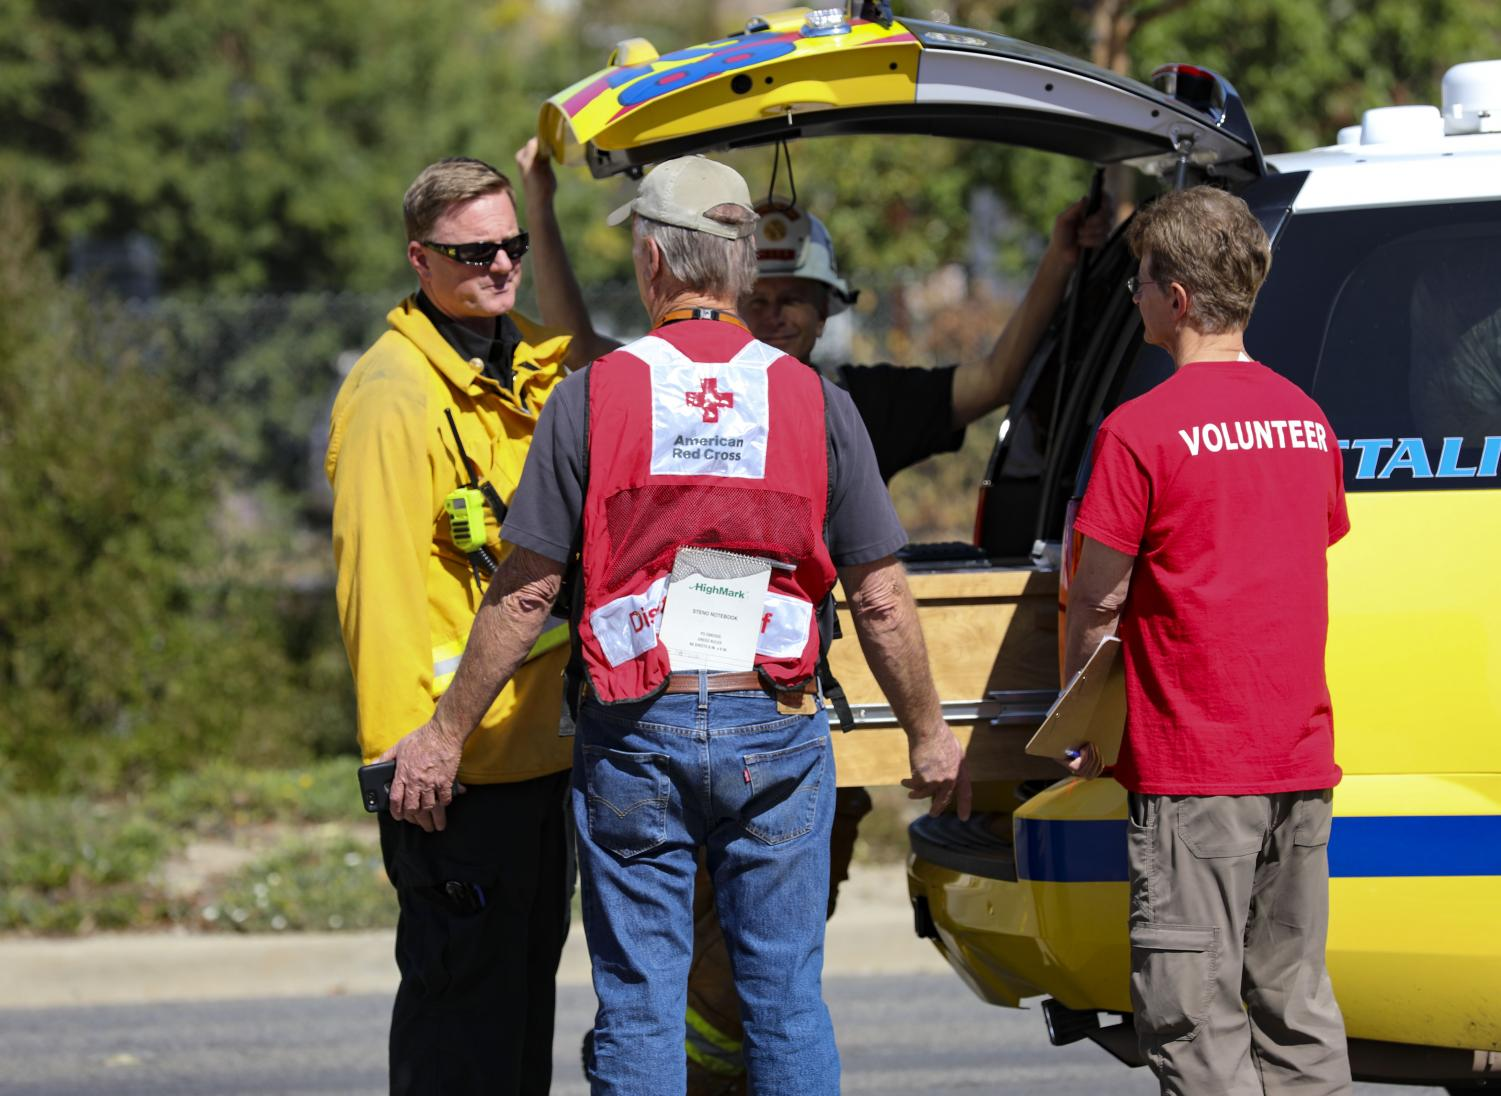 Michael Weisenberg, a Ventura County Fire Department battalion chief, Left, talks to Paul Brown, a Red Cross disaster action team supervisor, Right, about the current situation regarding the Buyers Fire in Simi Valley on Oct. 15. Photo credit: Ryan Bough